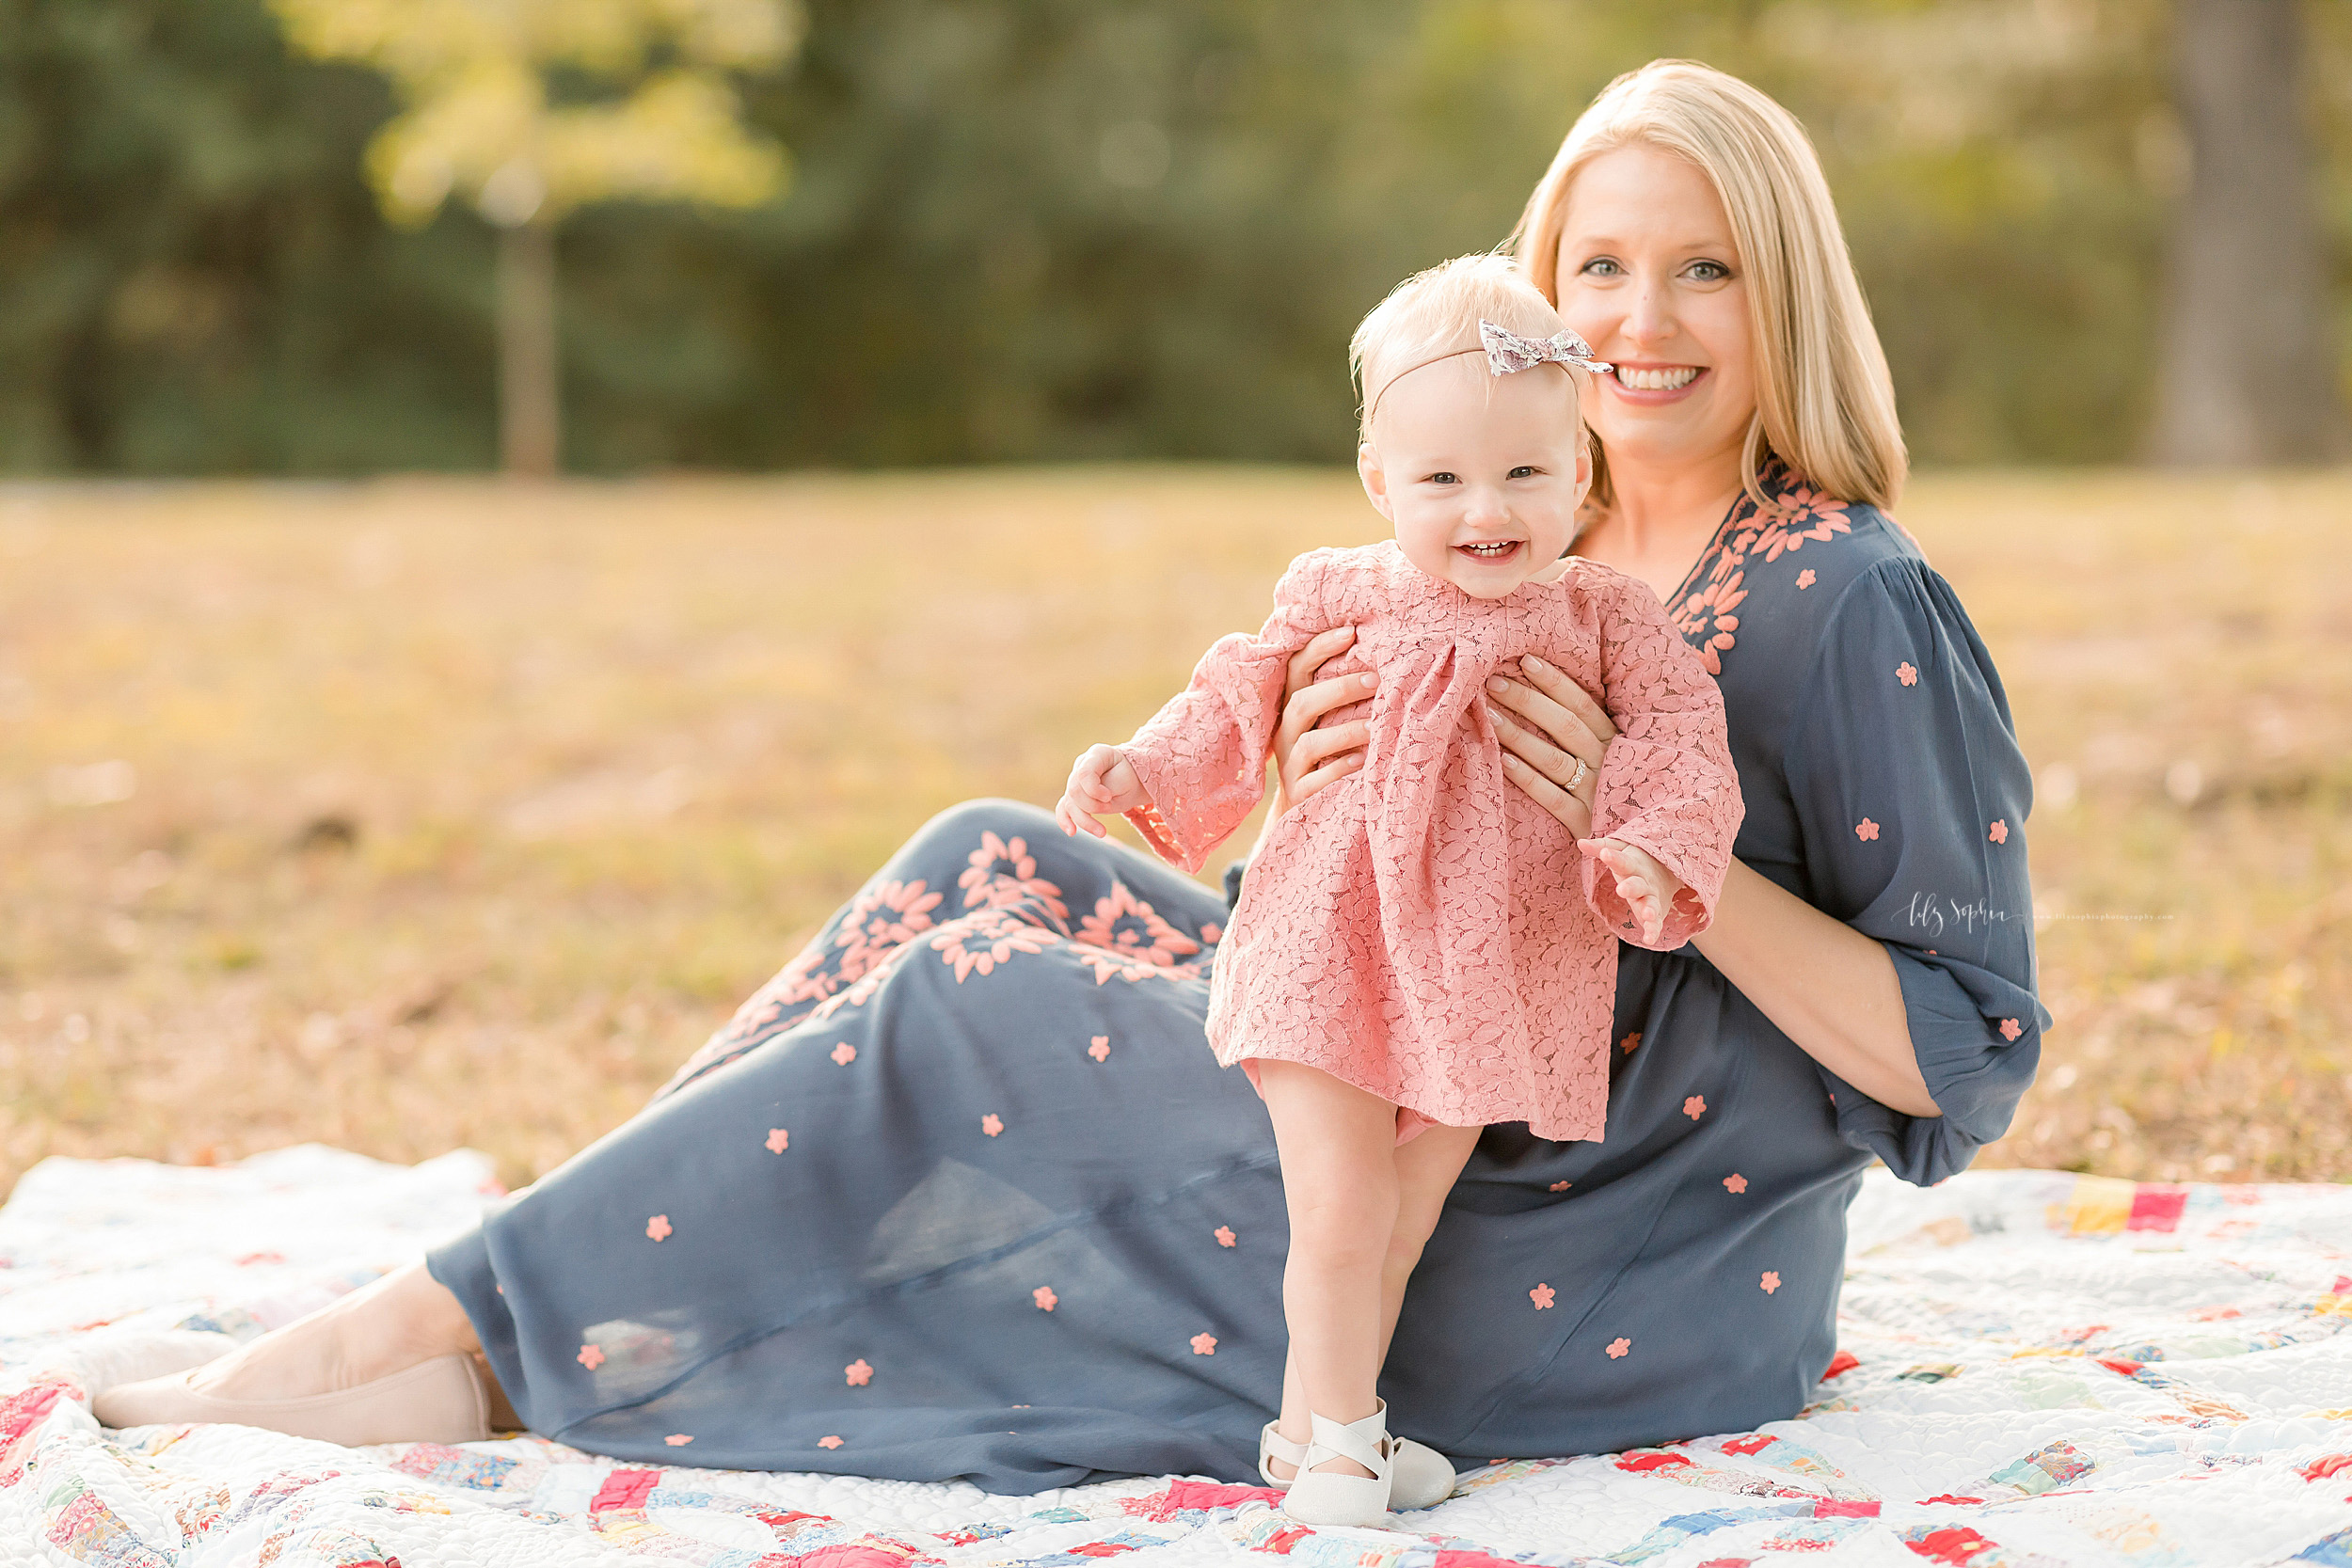 Family photo of mom and her daughter as mom sits on a quilt and her daughter stands next to her with her mom's help in Atlanta at a park at sunset.